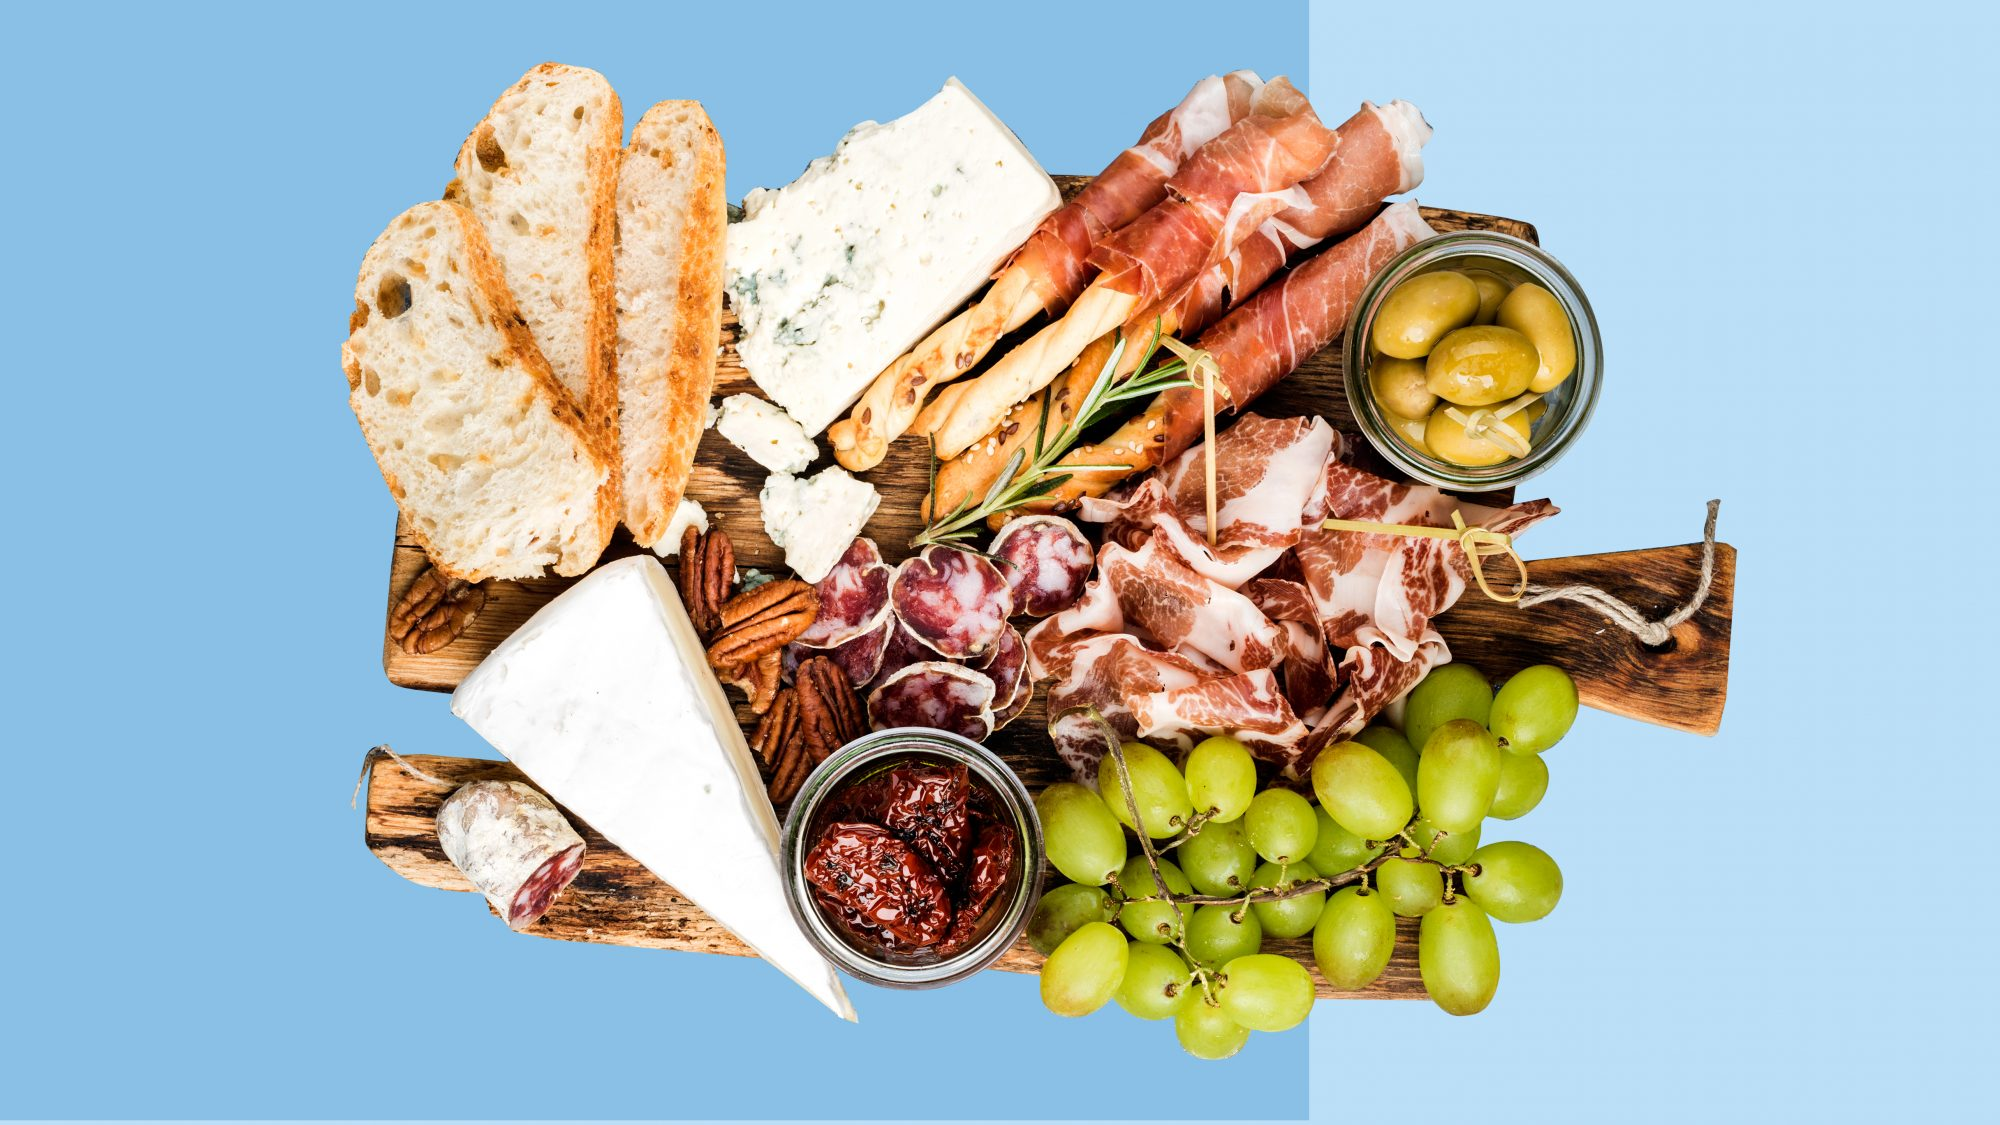 7 Essential Tips for Making the Best Charcuterie Board